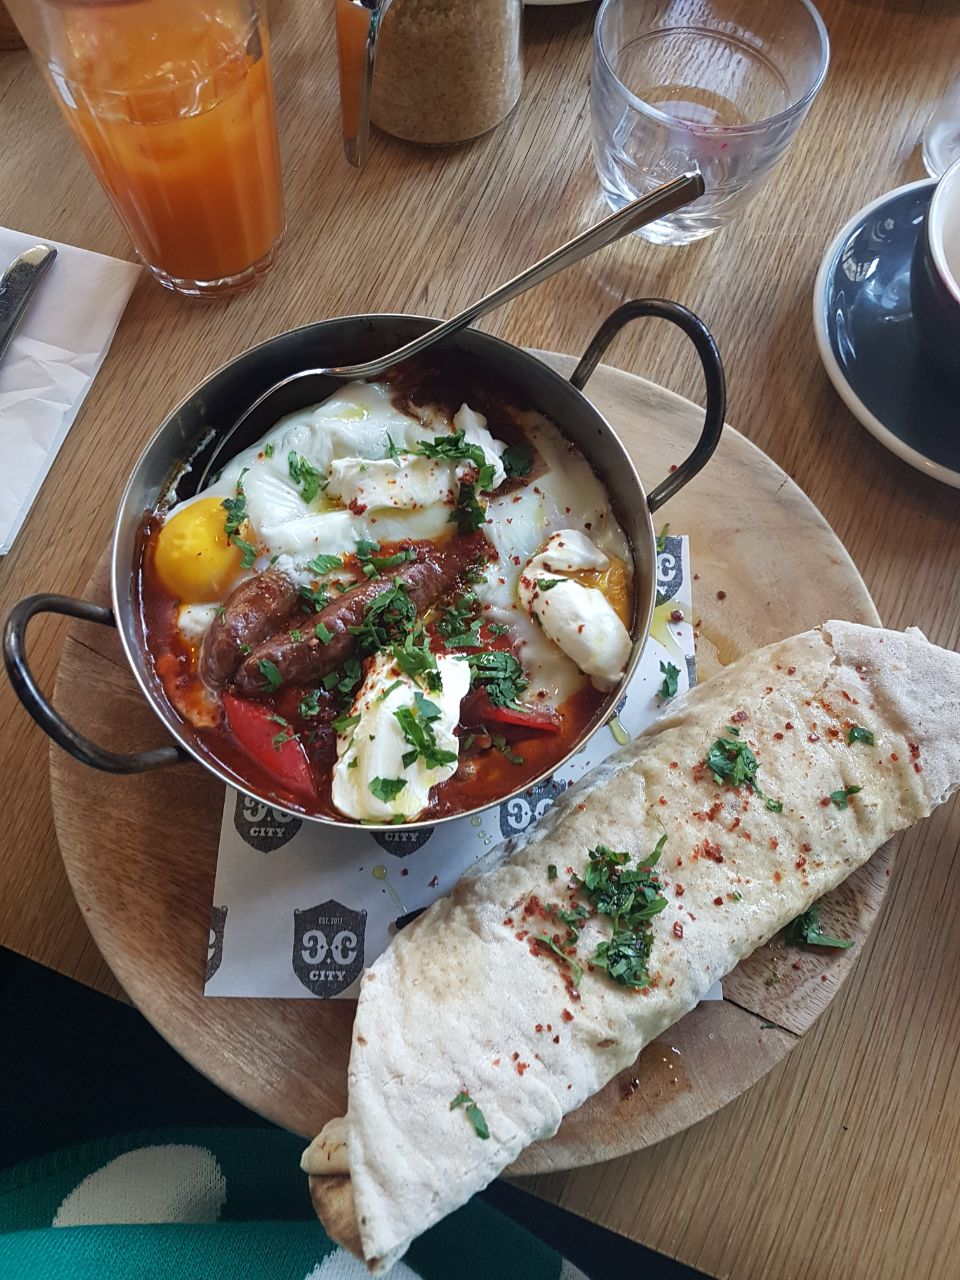 Lou's baked eggs with Mezcal sausage and flatbread at Caravan